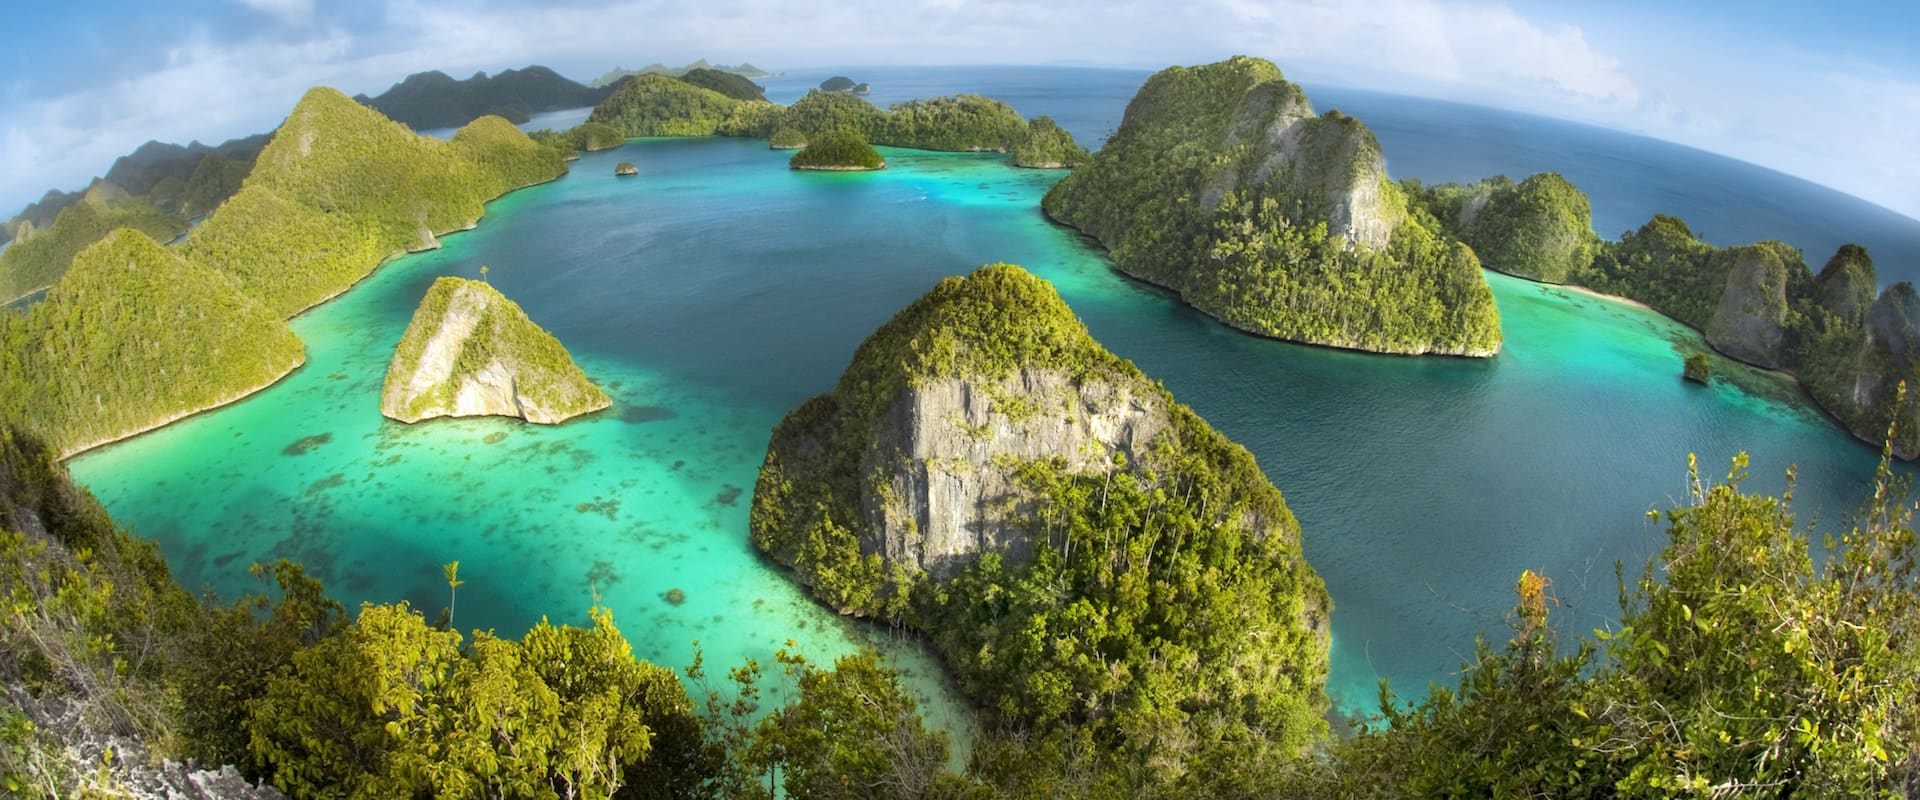 105 Small Ship Cruises in Indonesia - LiveAboard.com